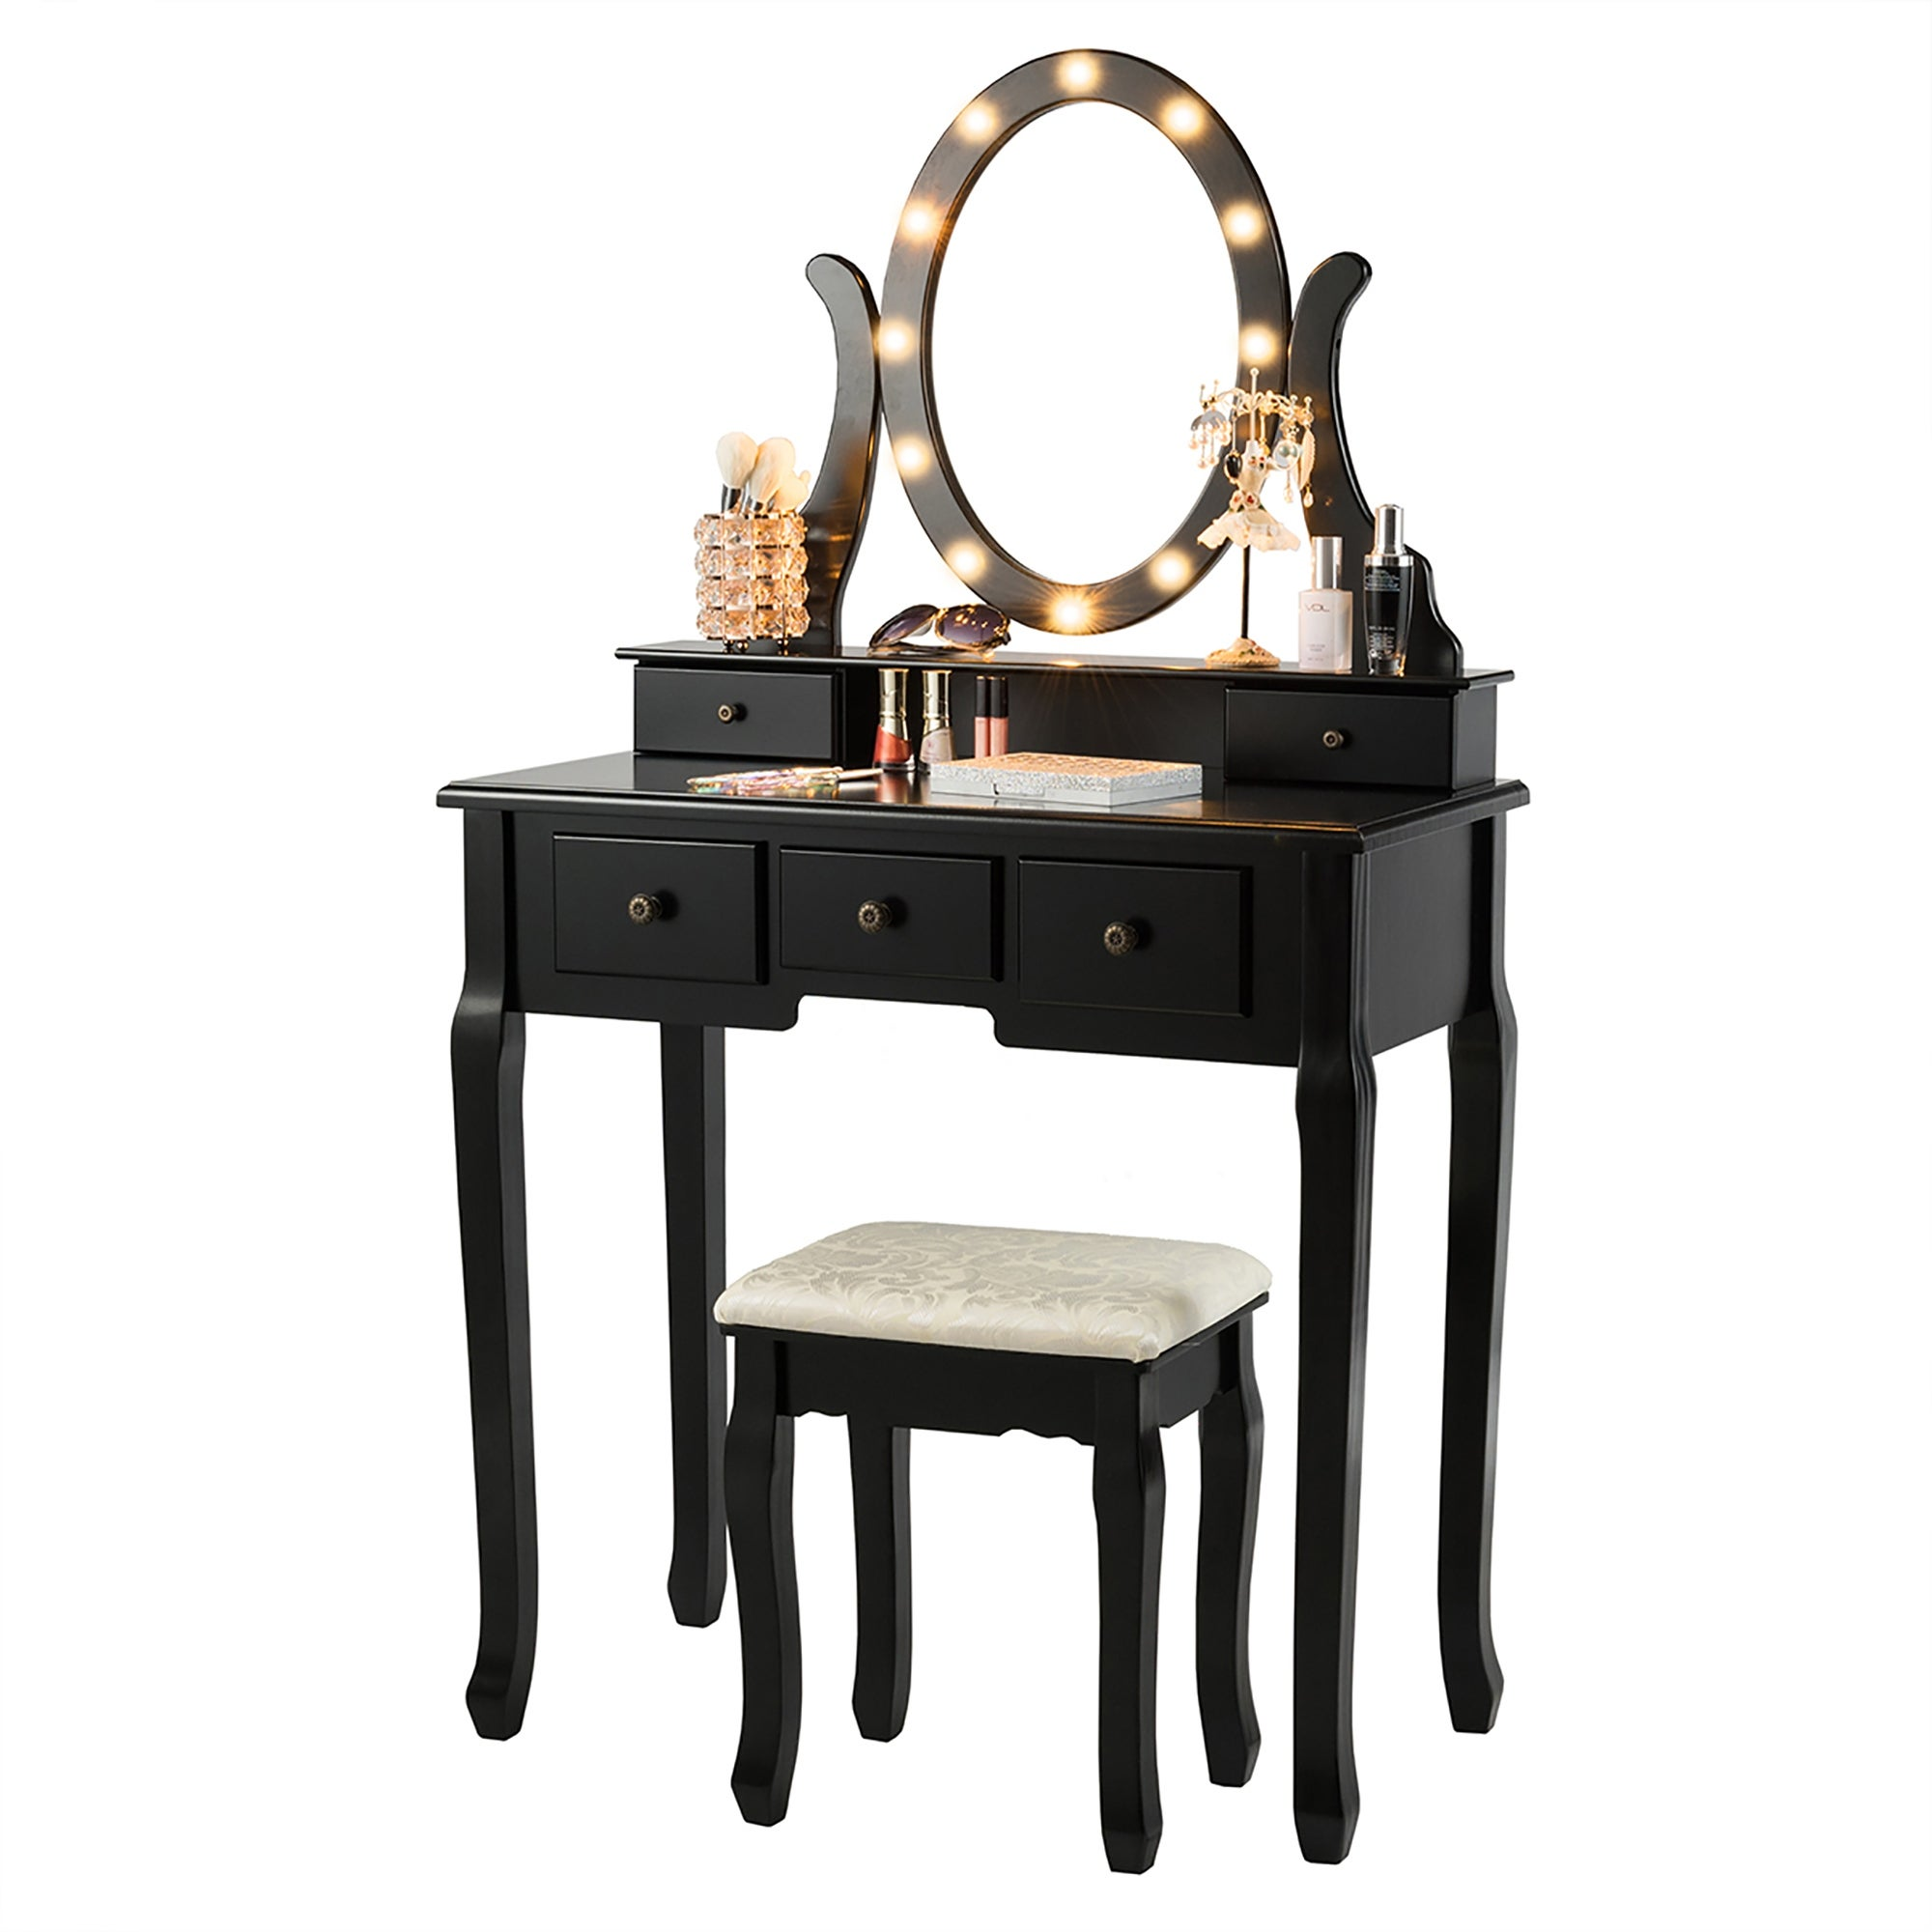 Shop Makeup Dressing Table Vanity Table Set With 12 Led Lights Overstock 32330751